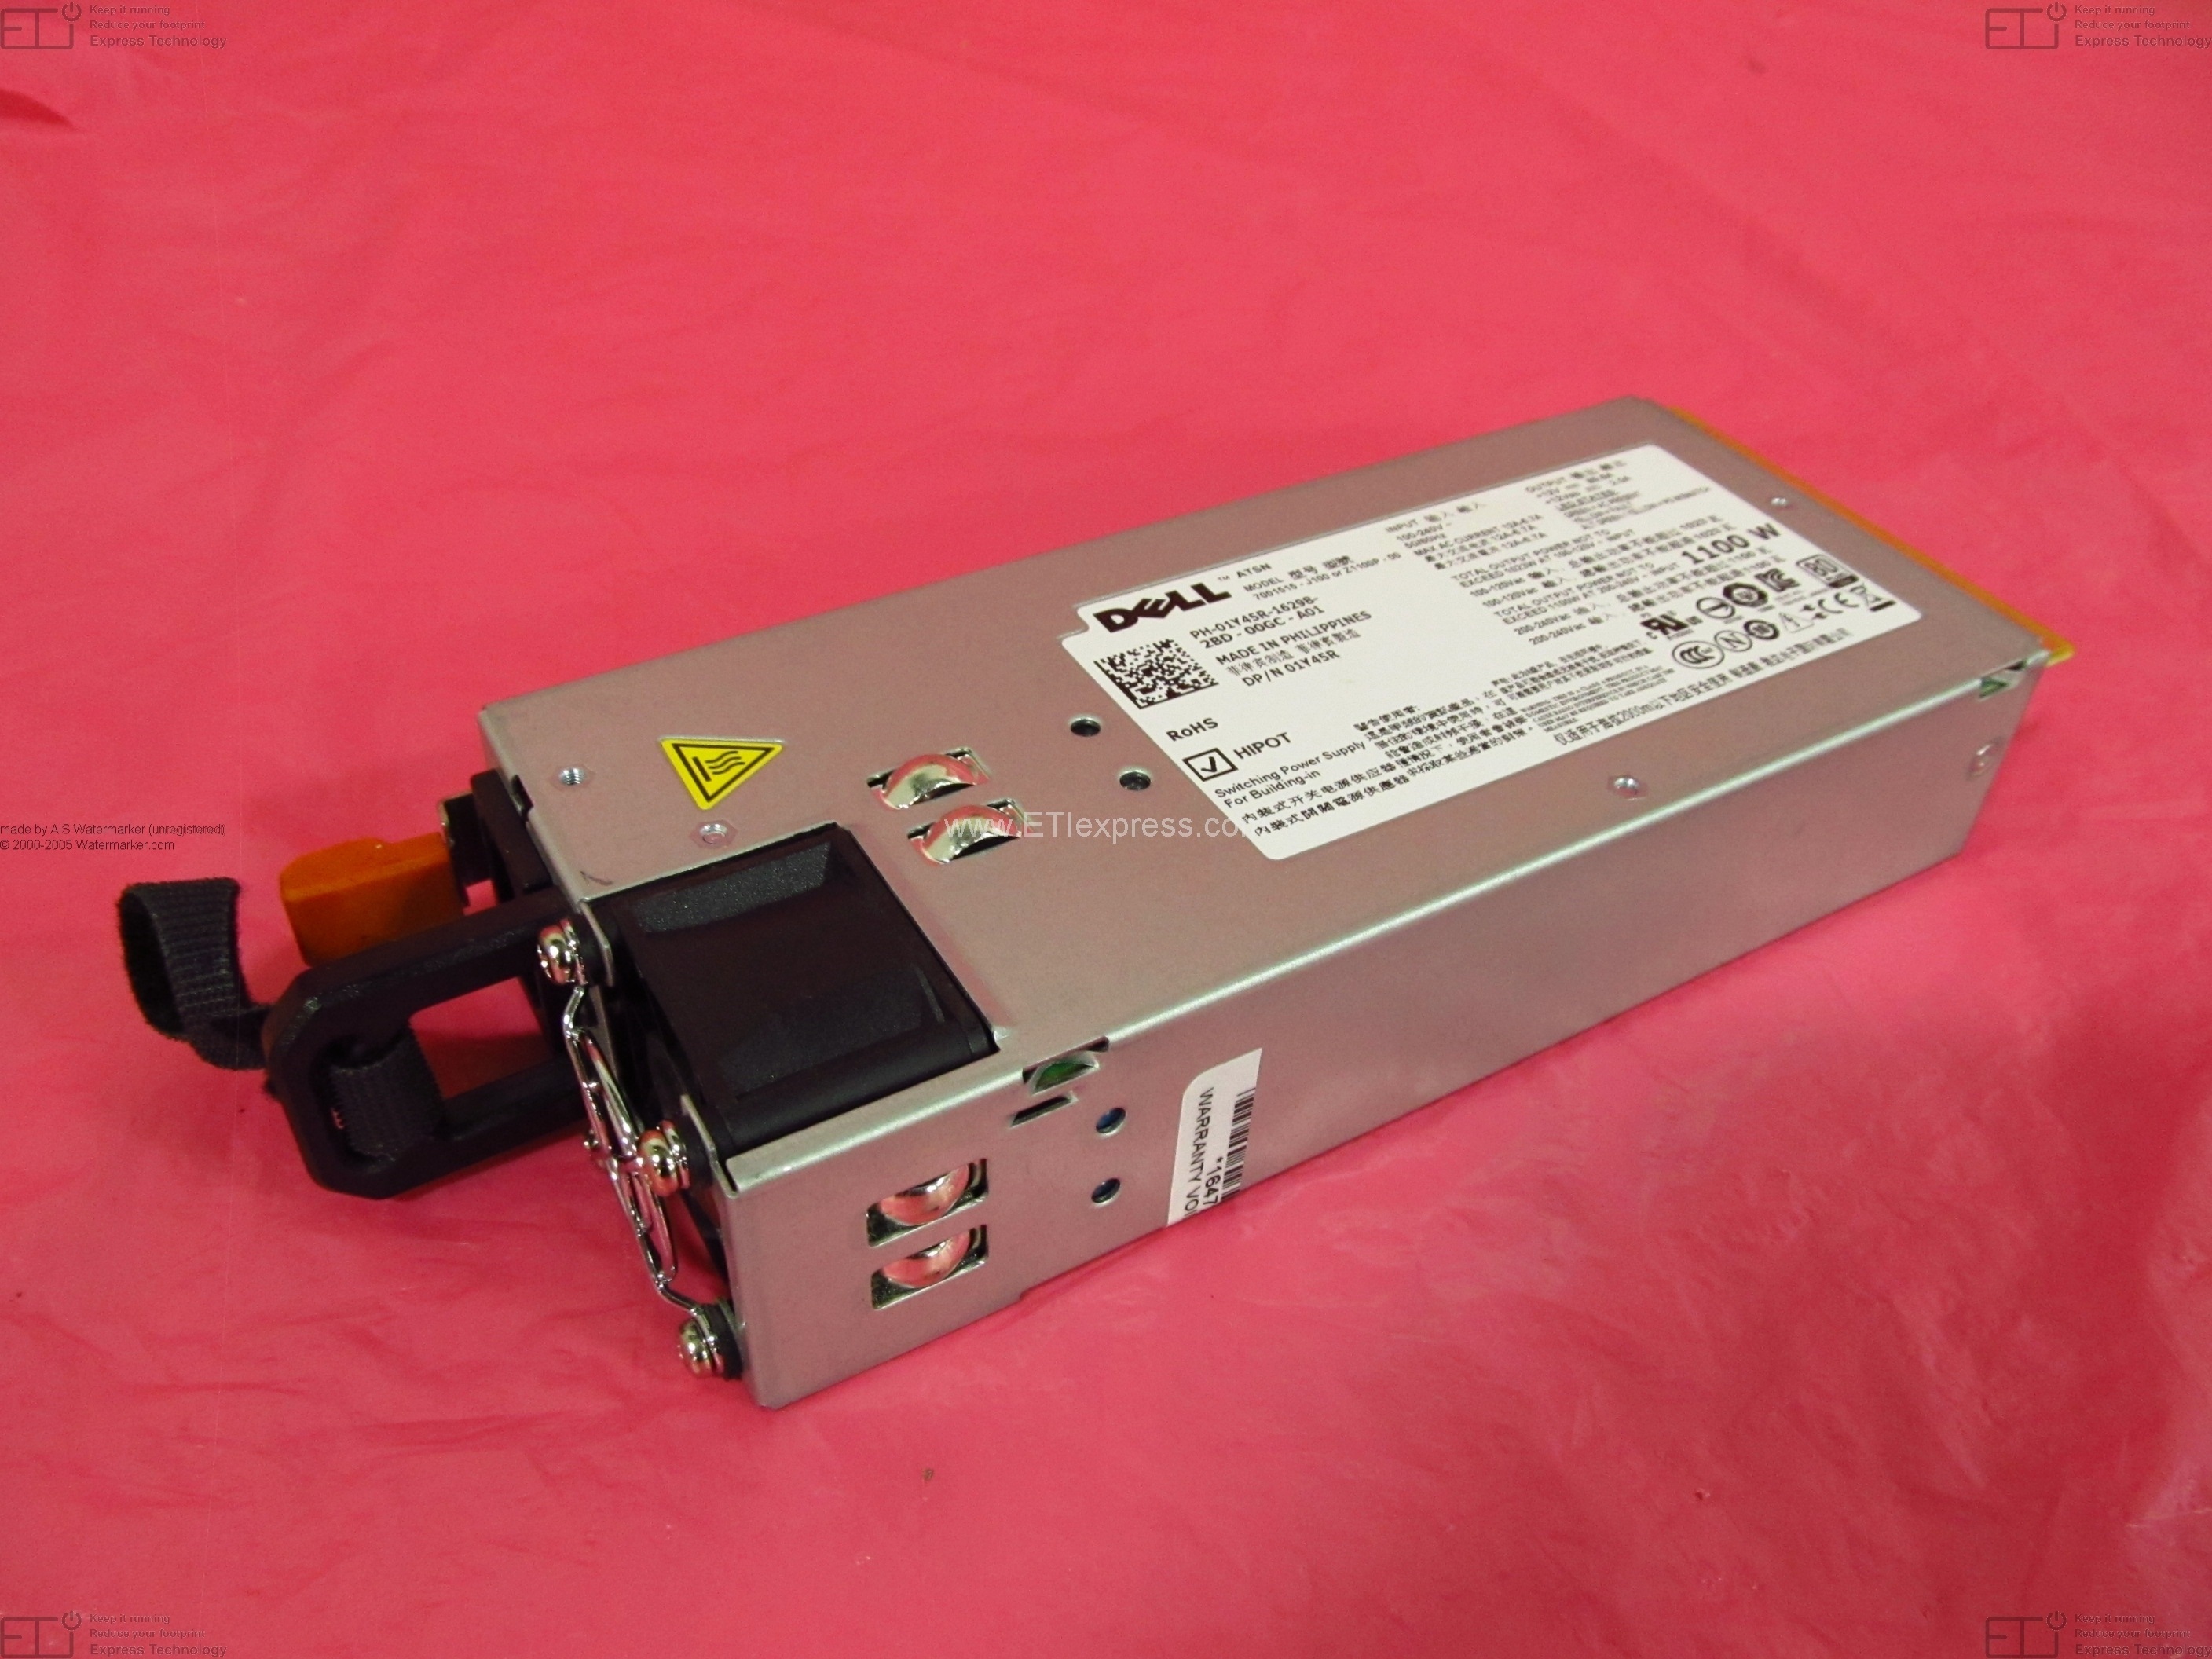 Mfr Dell P//N: X7167. 488W Redundant Power Supply for PowerVault MD1000//MD3000